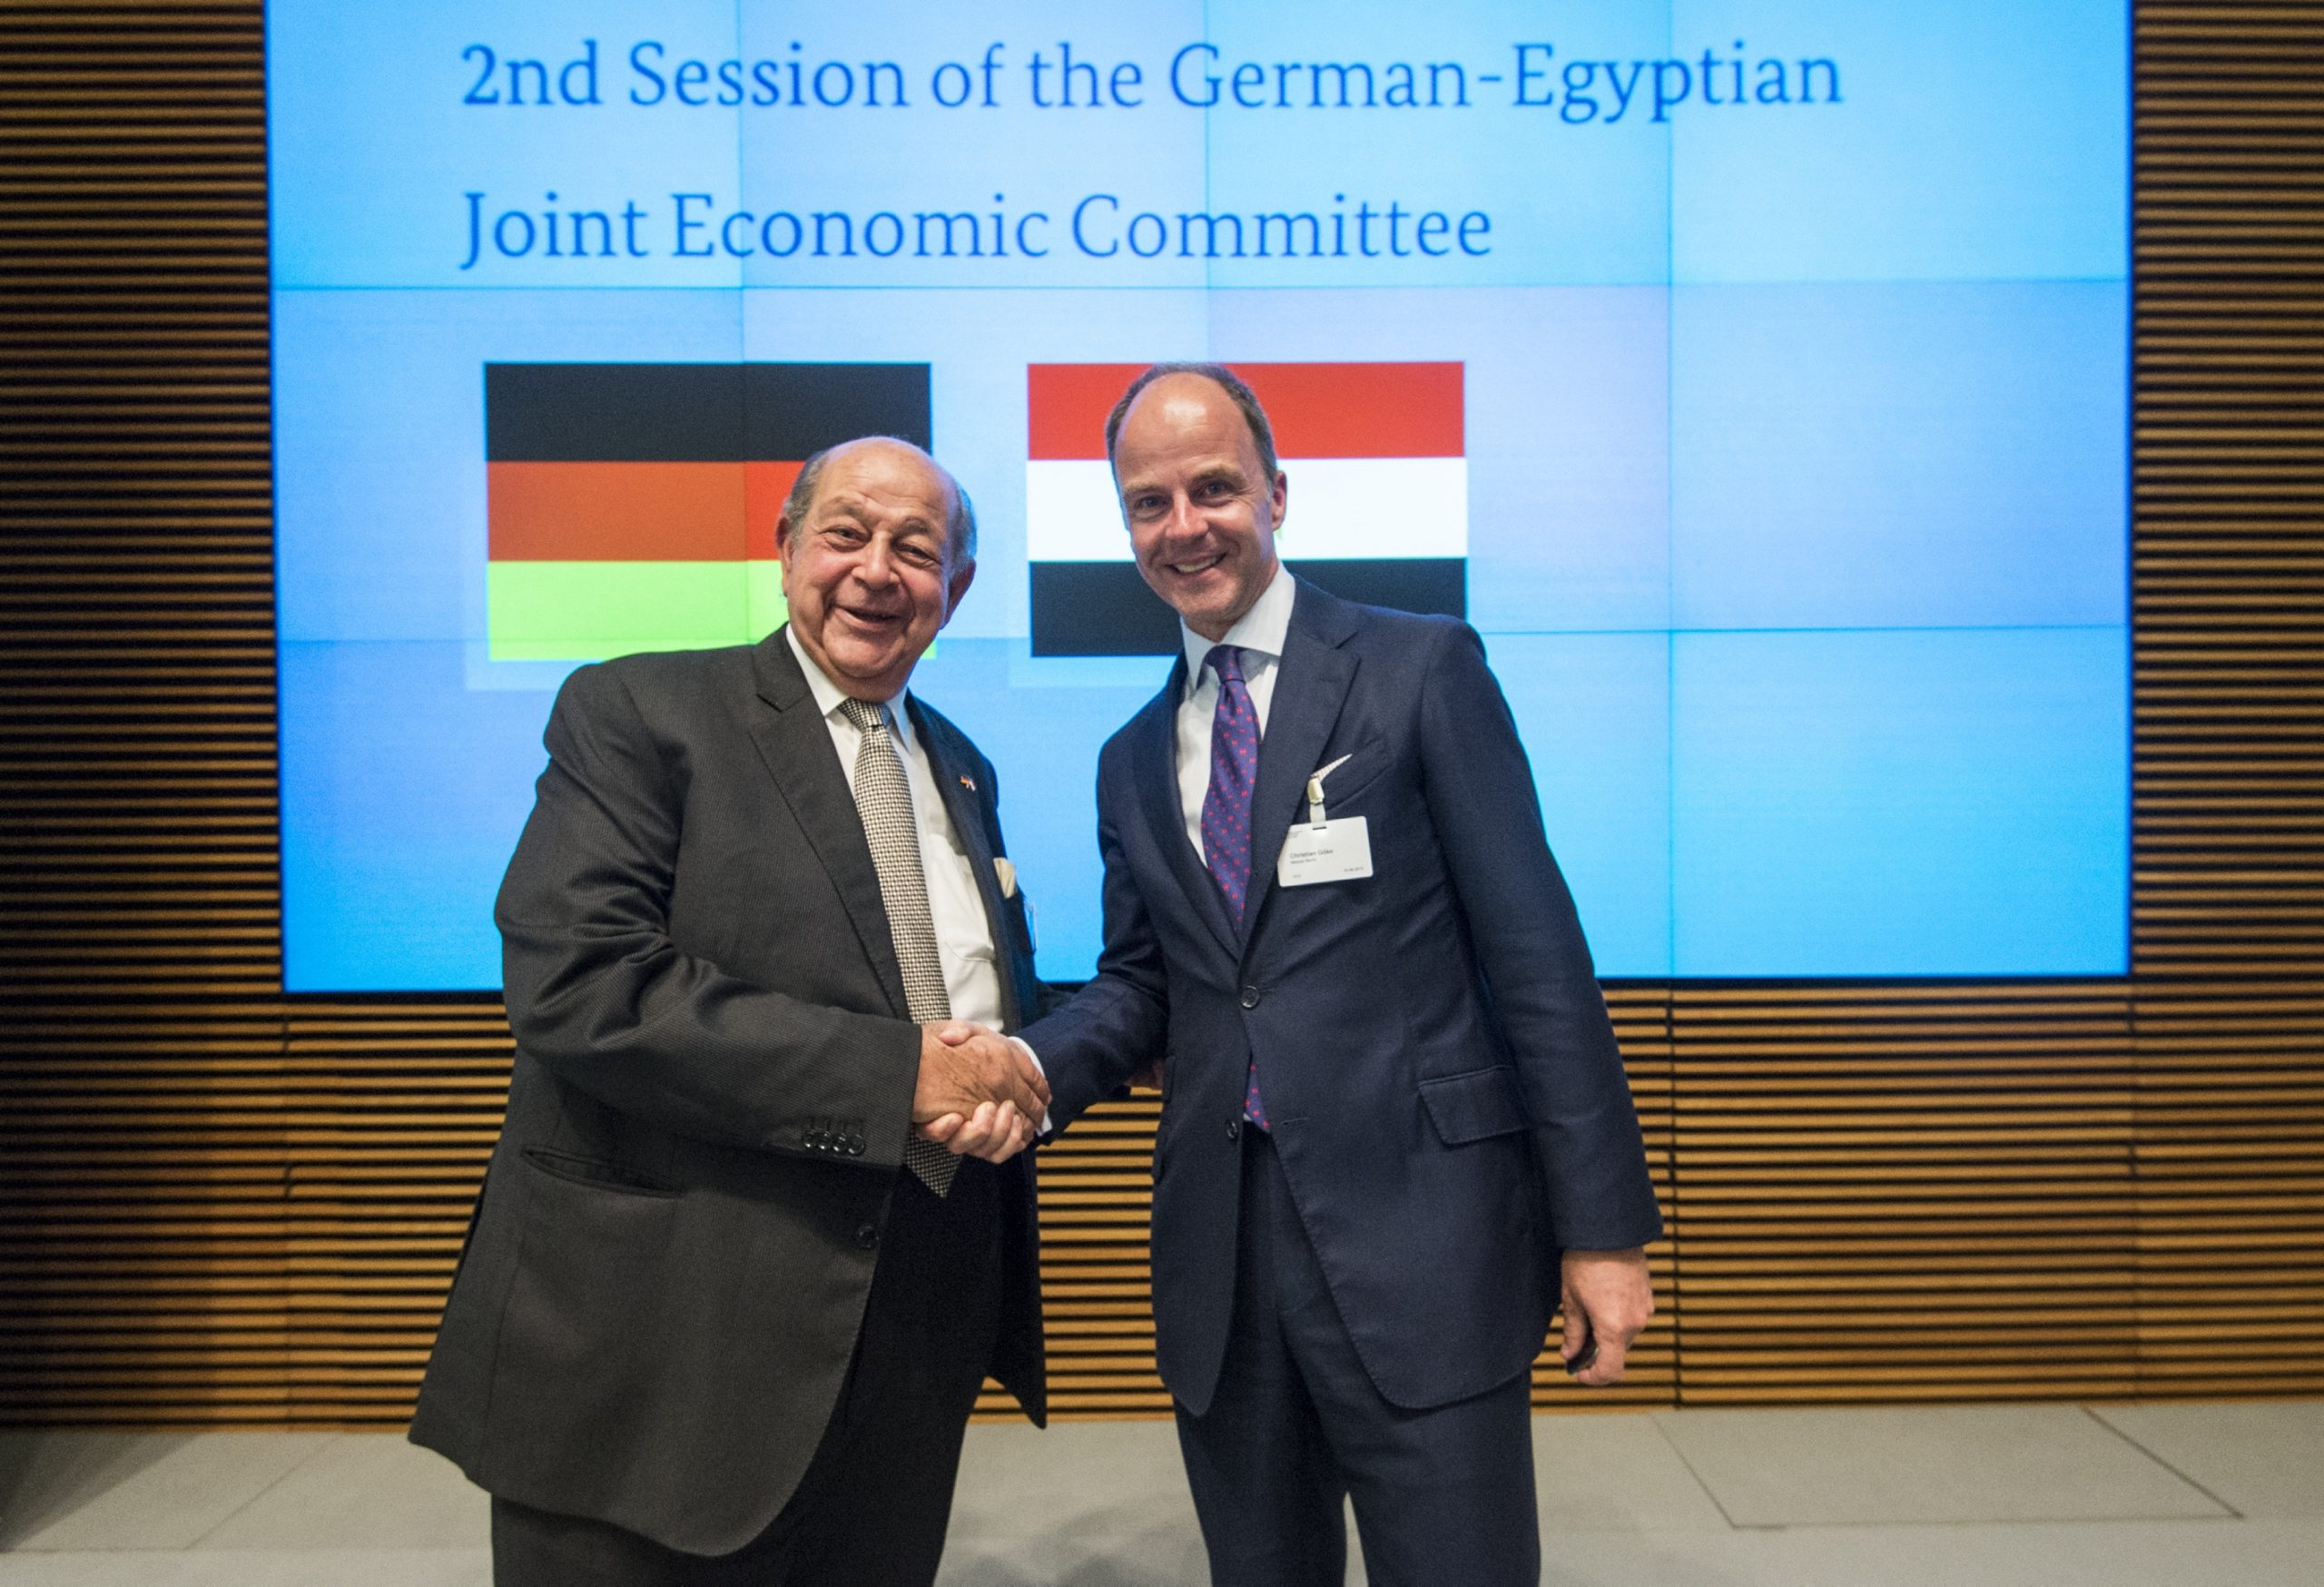 the future looks bright for Egypt's agricultural exports. In the last decade, it has increased the volume of this trade by 226% and now exports to 145 countries. New investments in the sector and its commitment to the establishment of international specifications in packaging will support further growth.